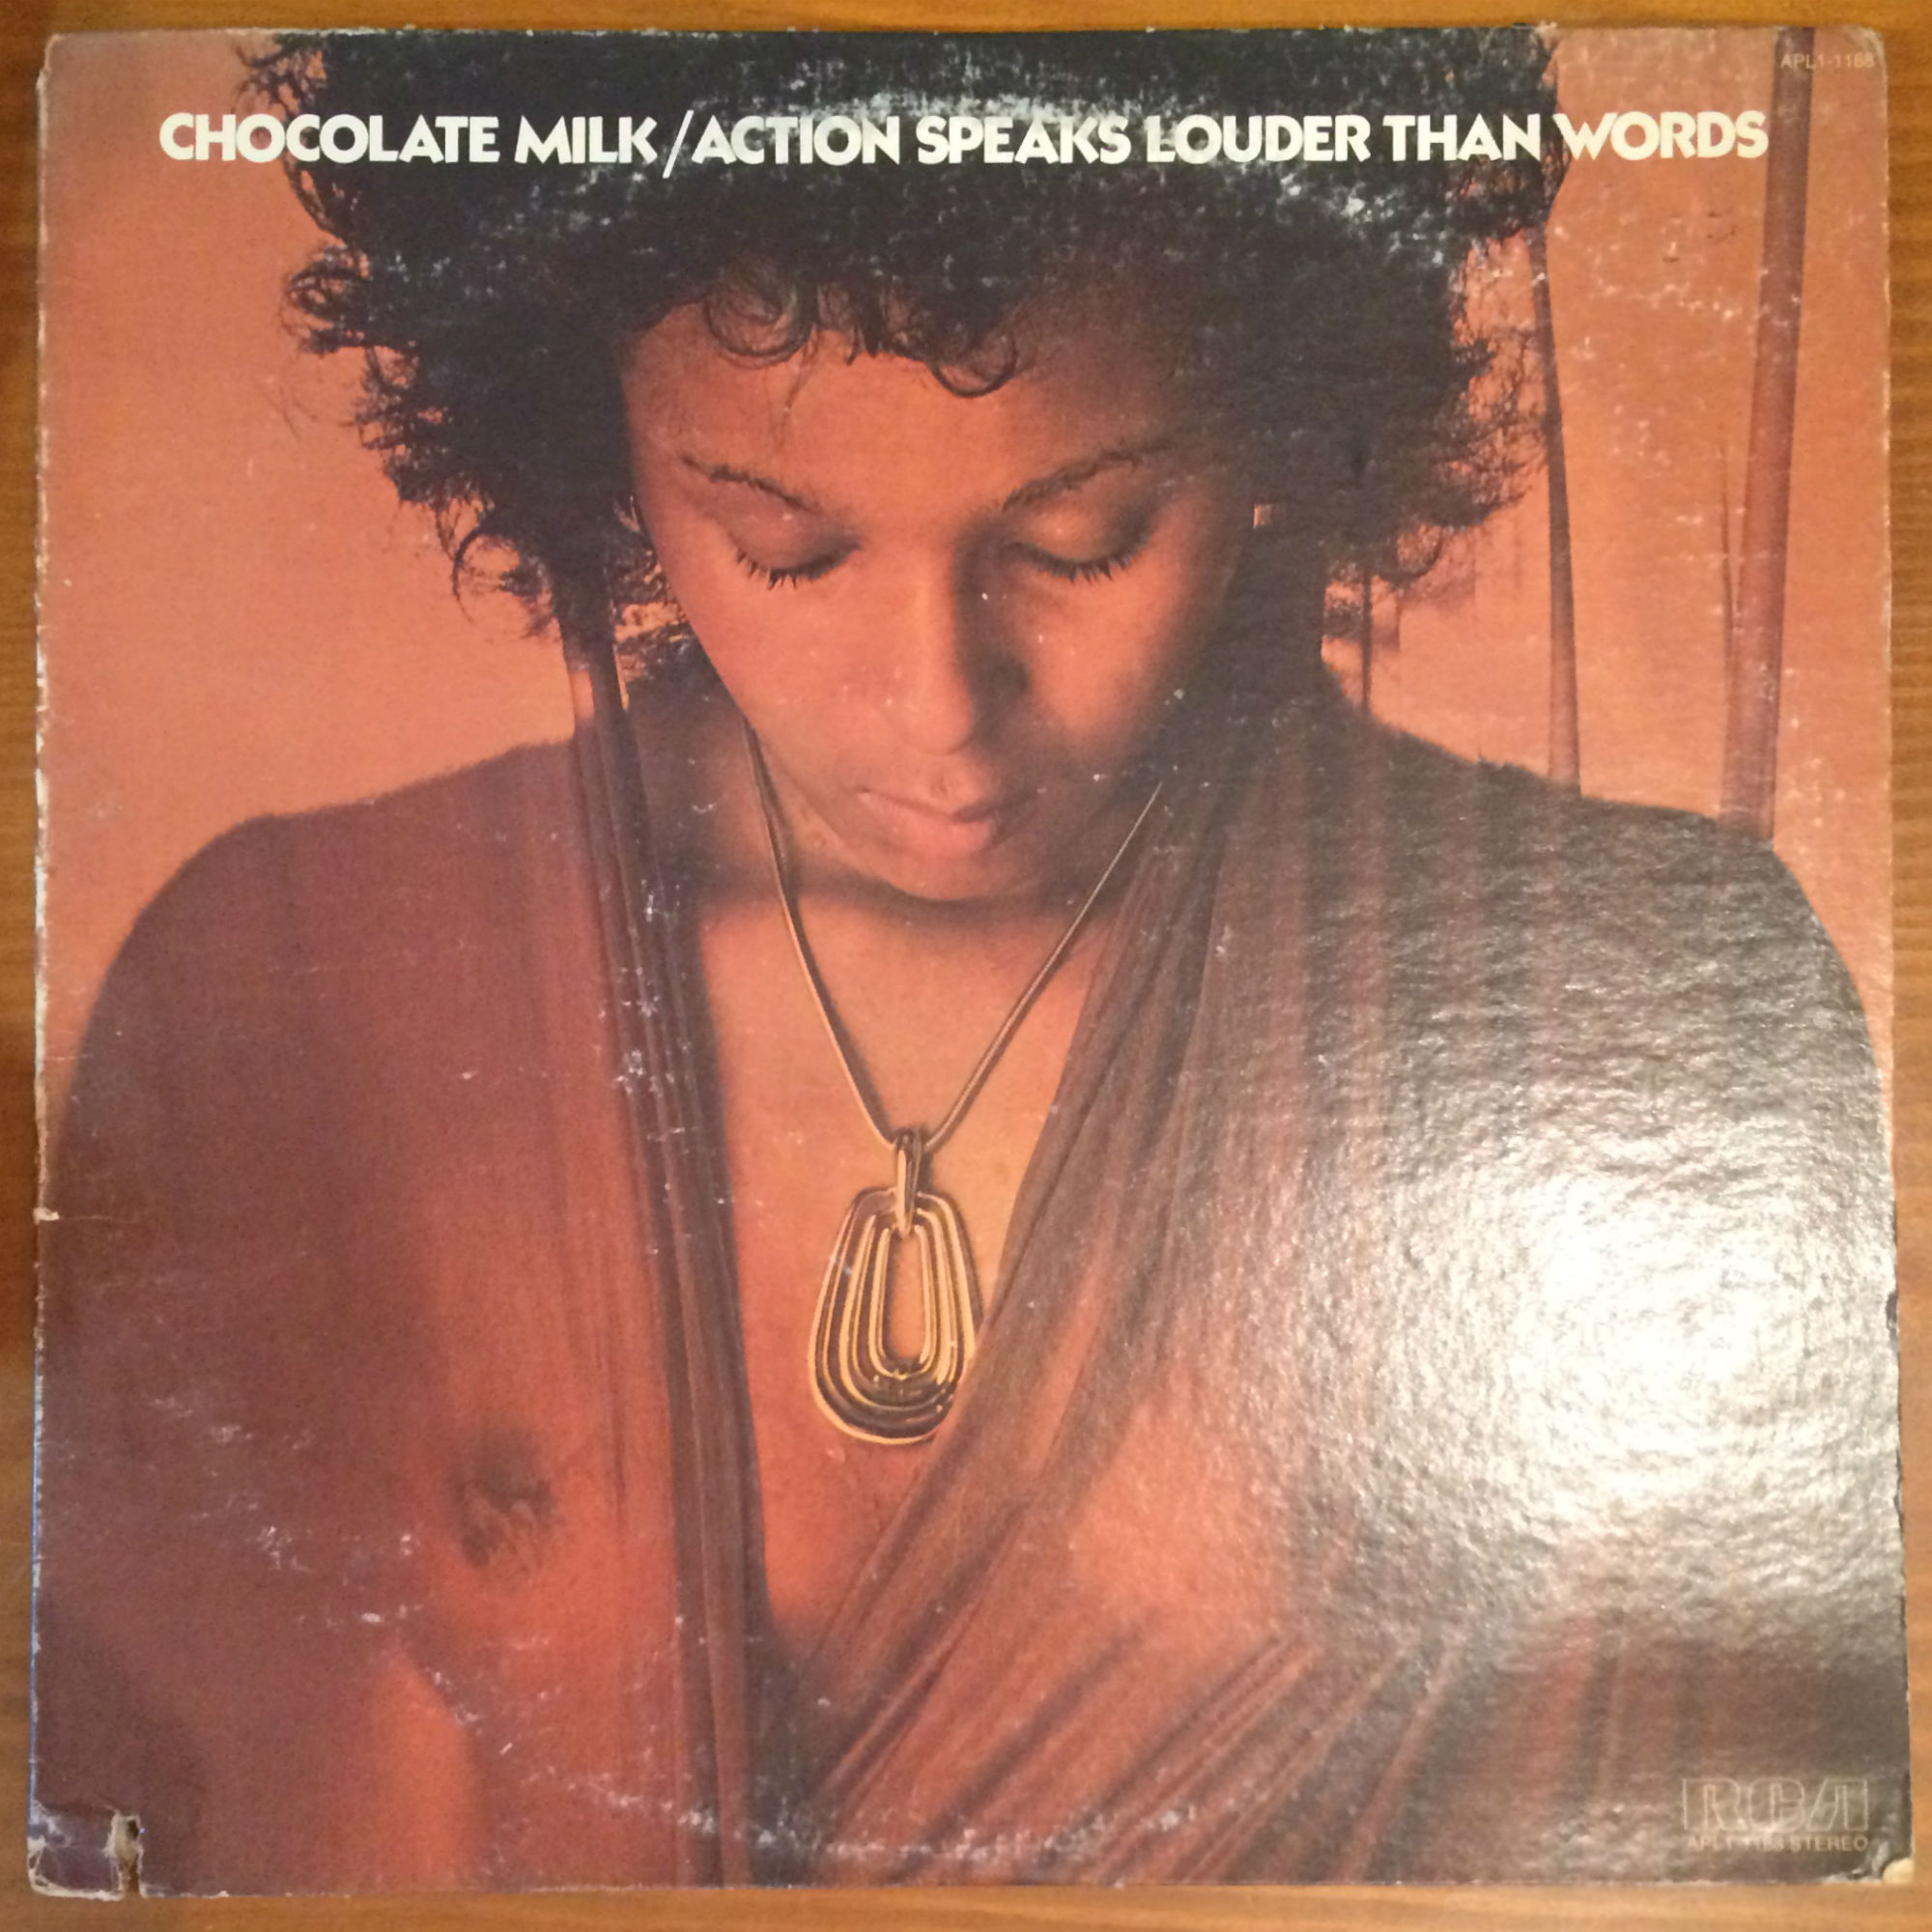 ●CHOCOLATE MILK / ACTION SPEAKS LOUDER THAN WORDS